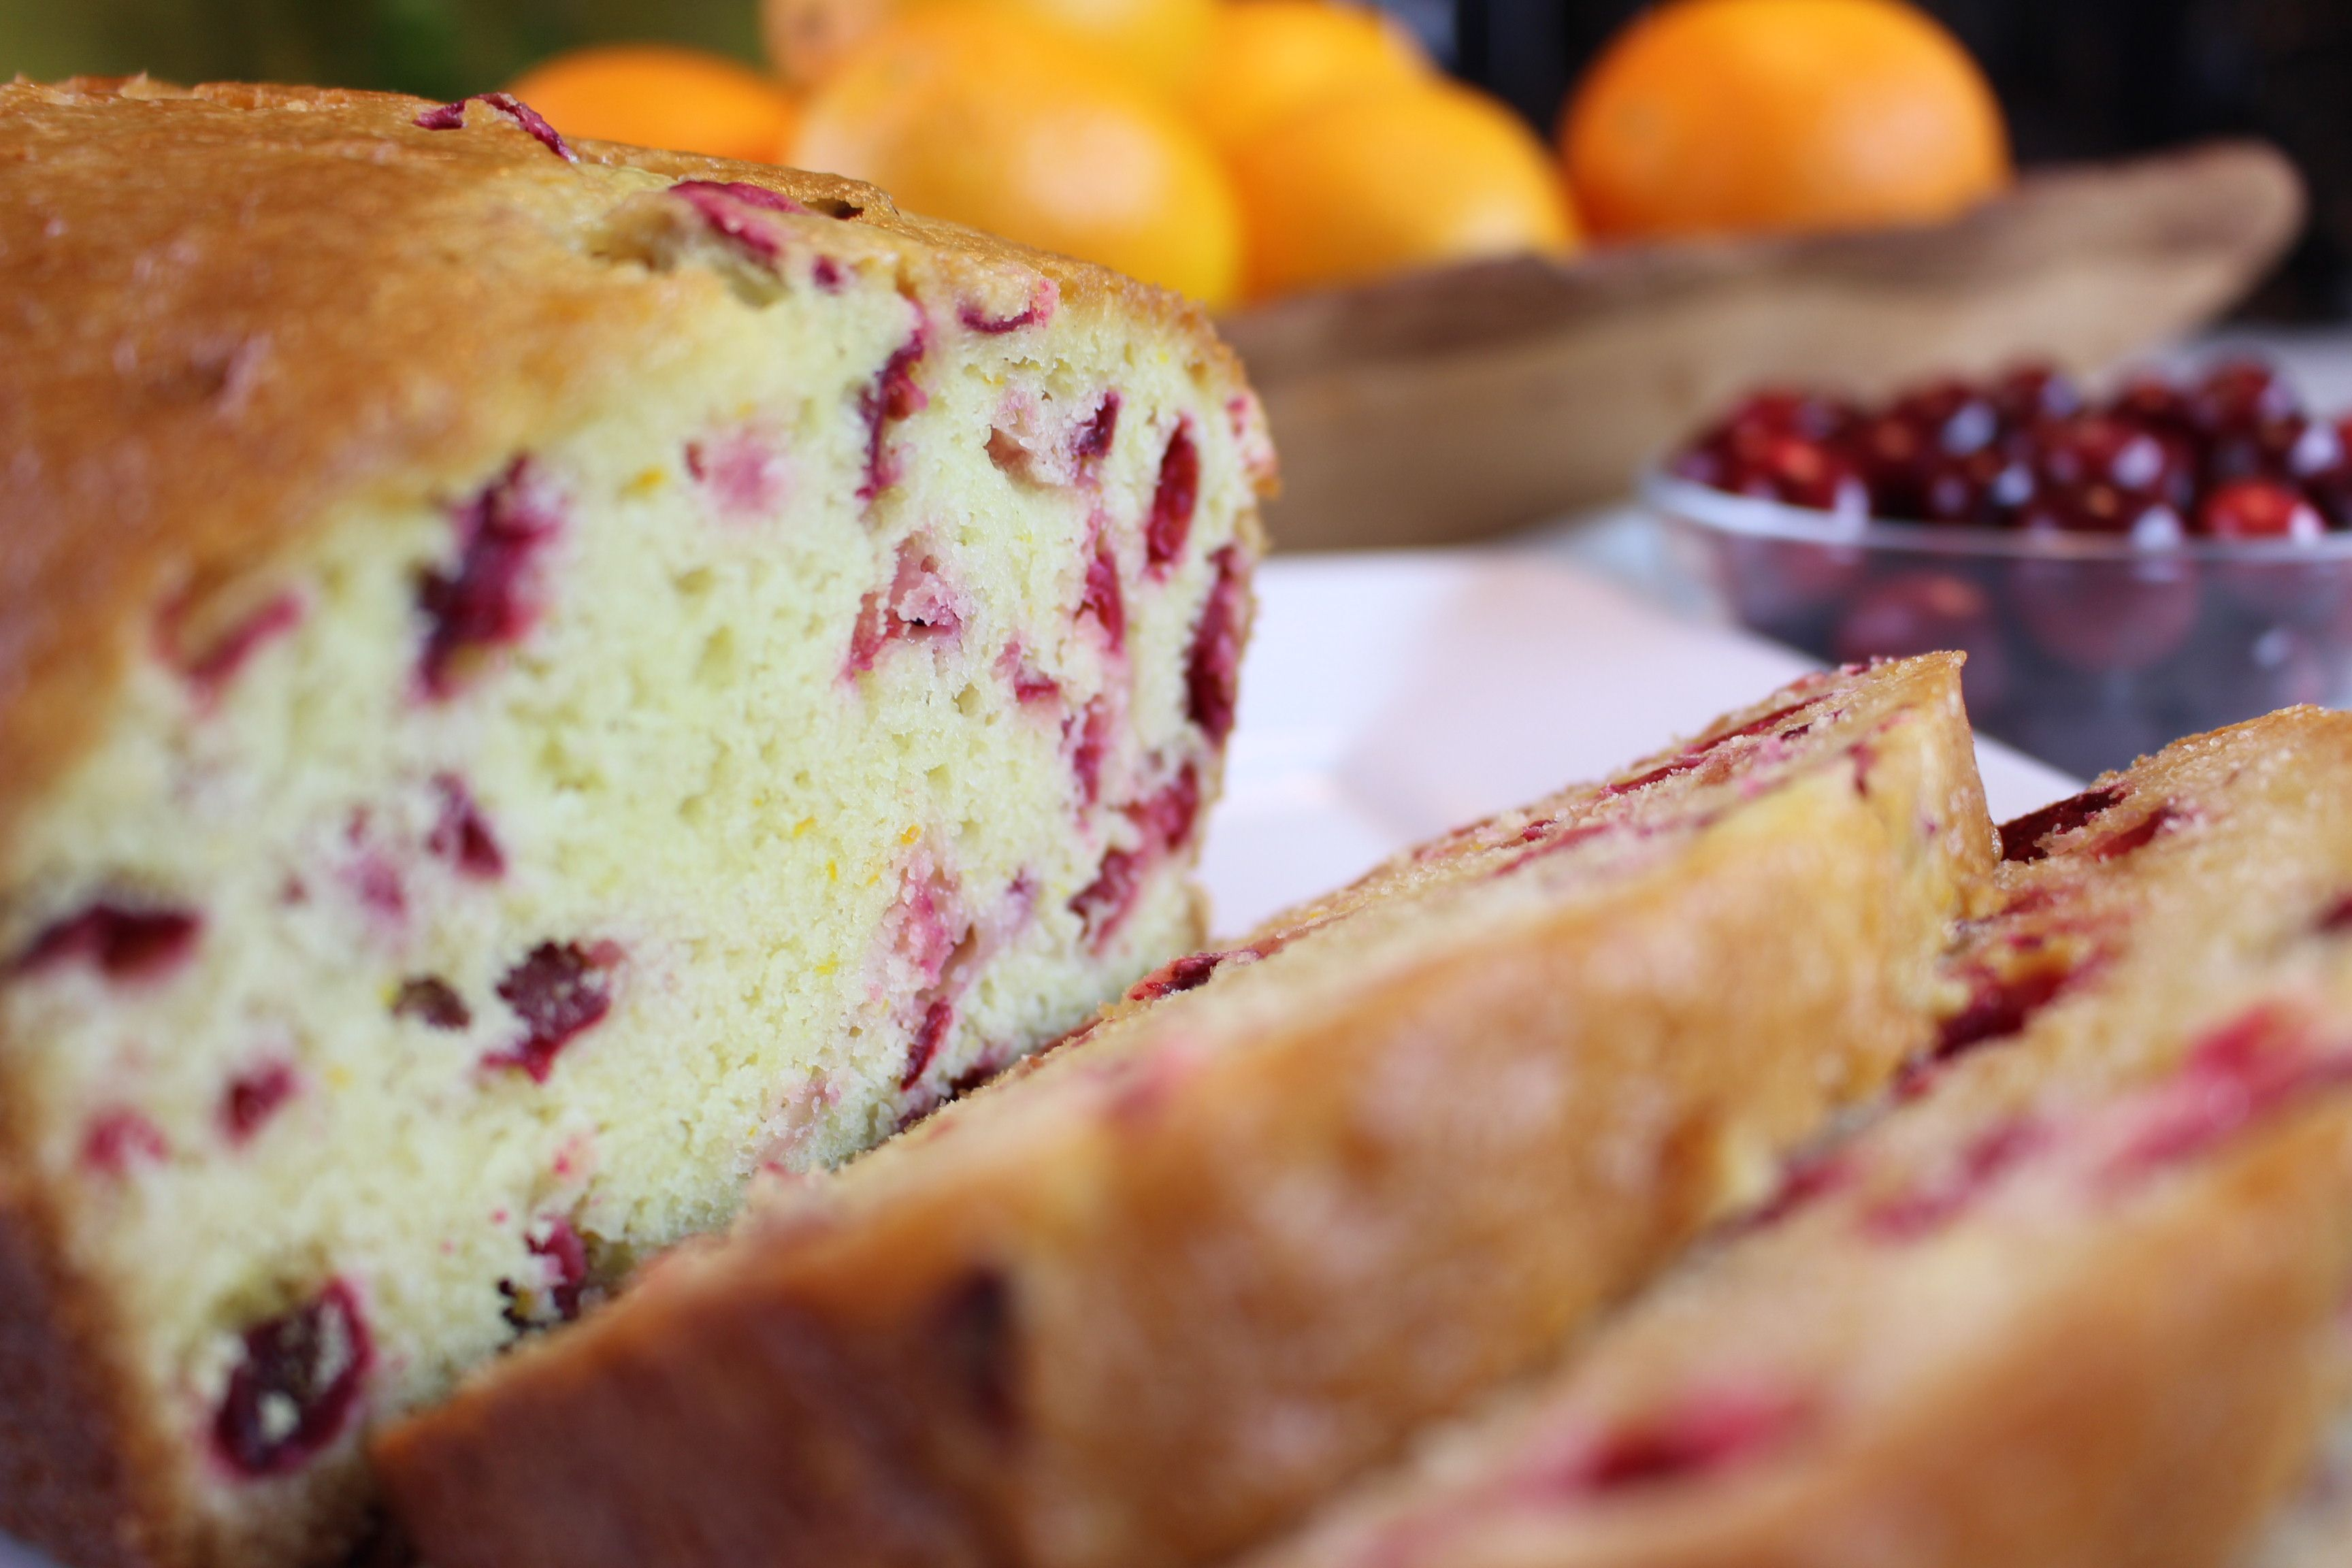 Cranberry bread is a and delicious addition to